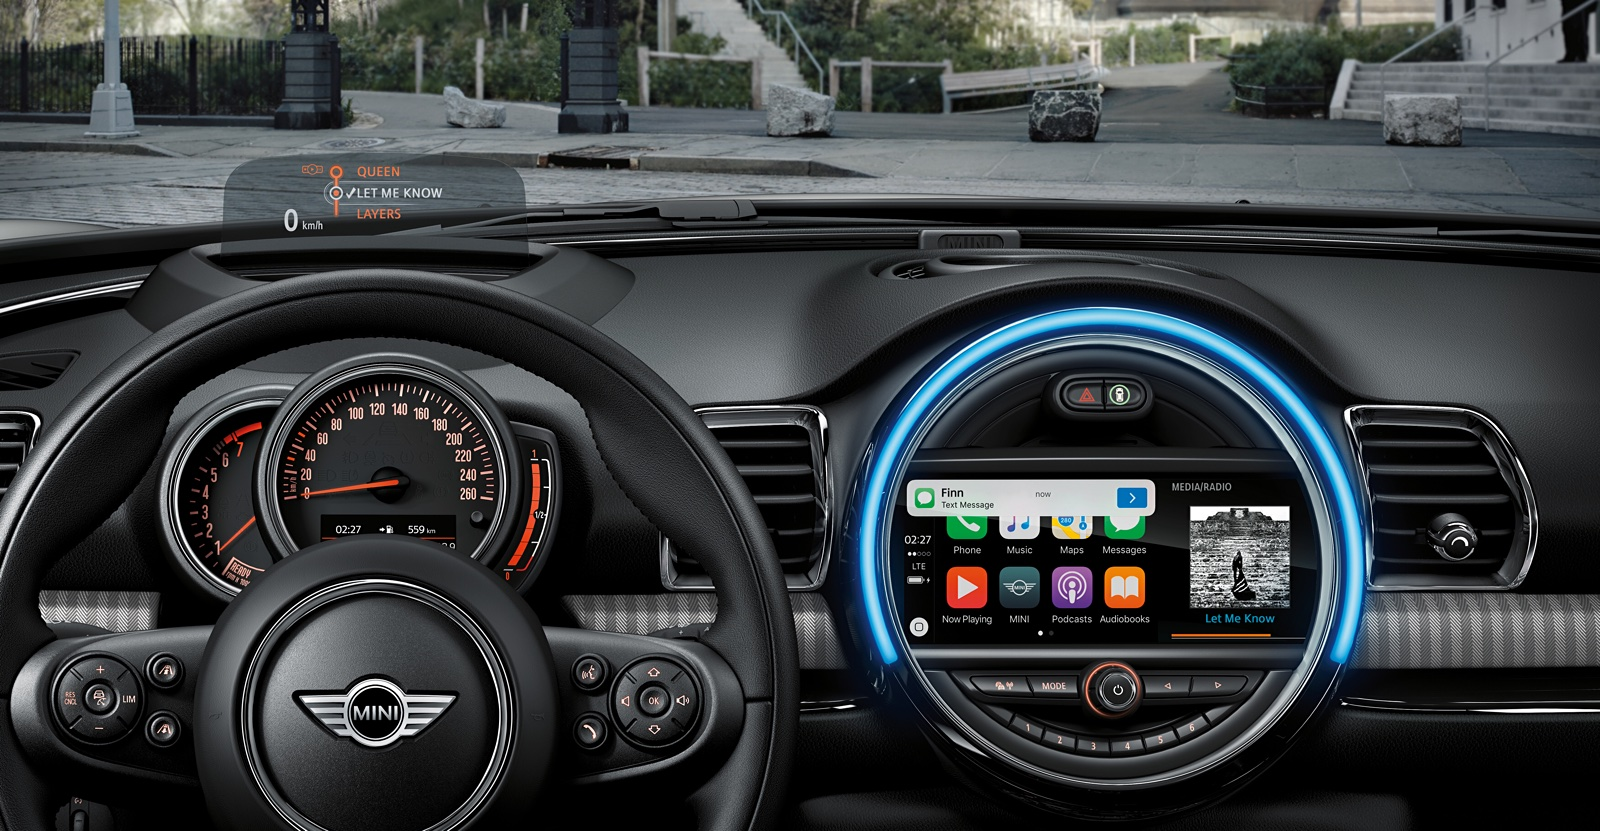 MF Garage: CarPlay is Here and We've Already Turned it Off